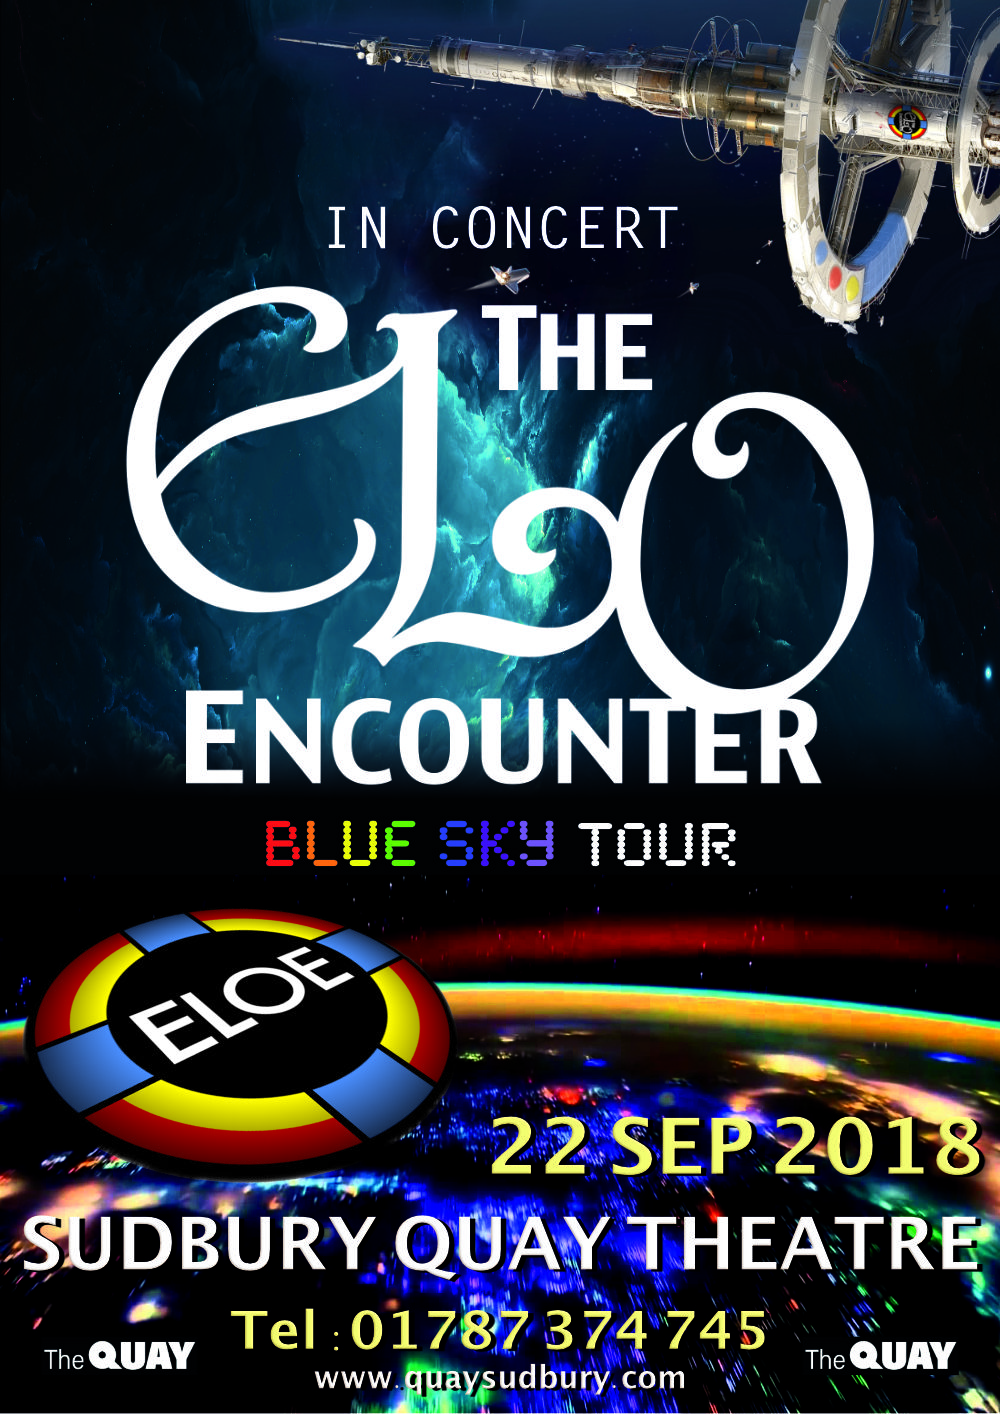 Sudbury Quay Theatre 2018 - ELO Encounter Poster